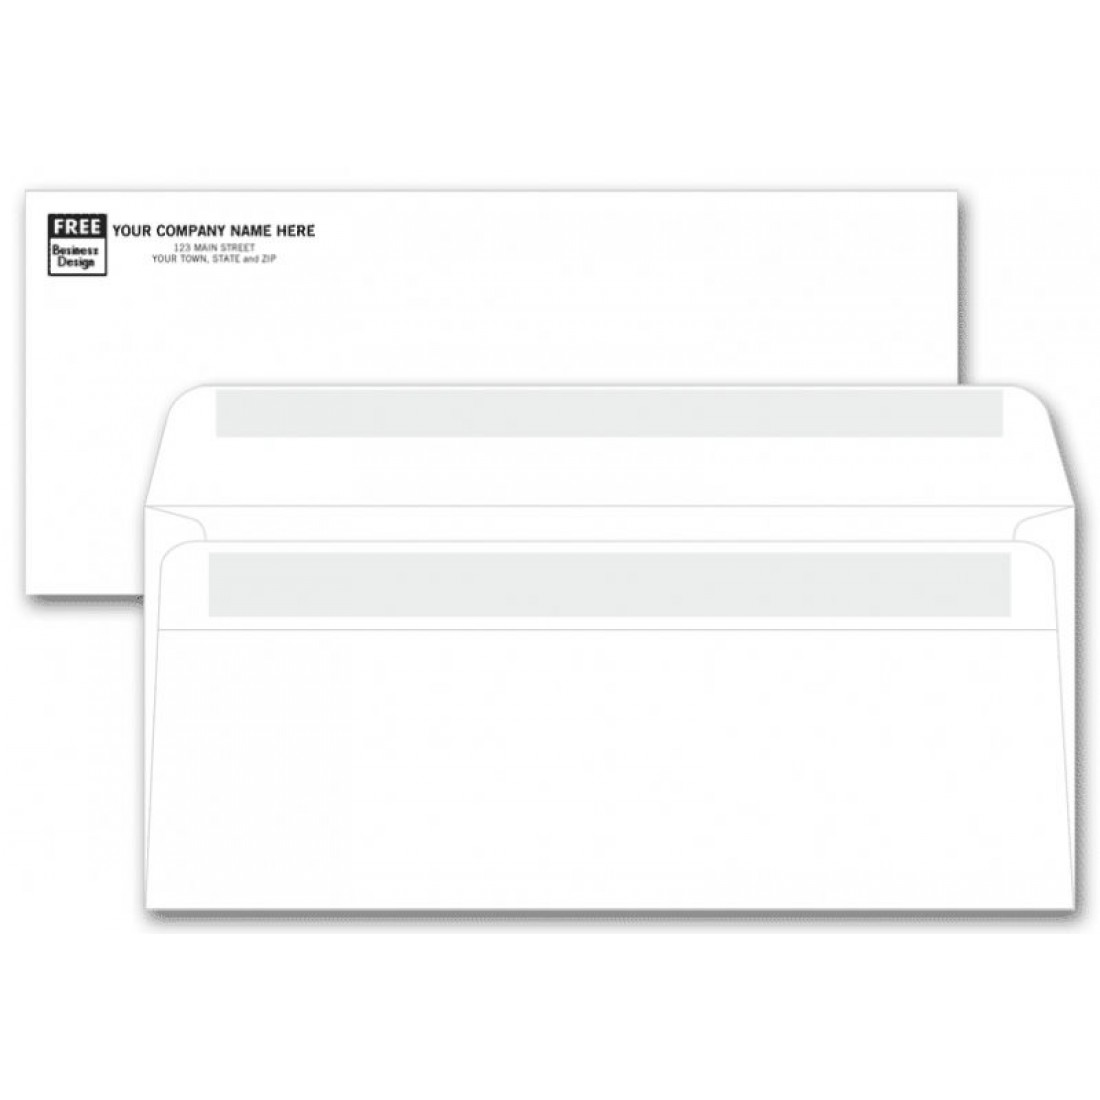 No. 10 Self Seal Envelopes - No Window